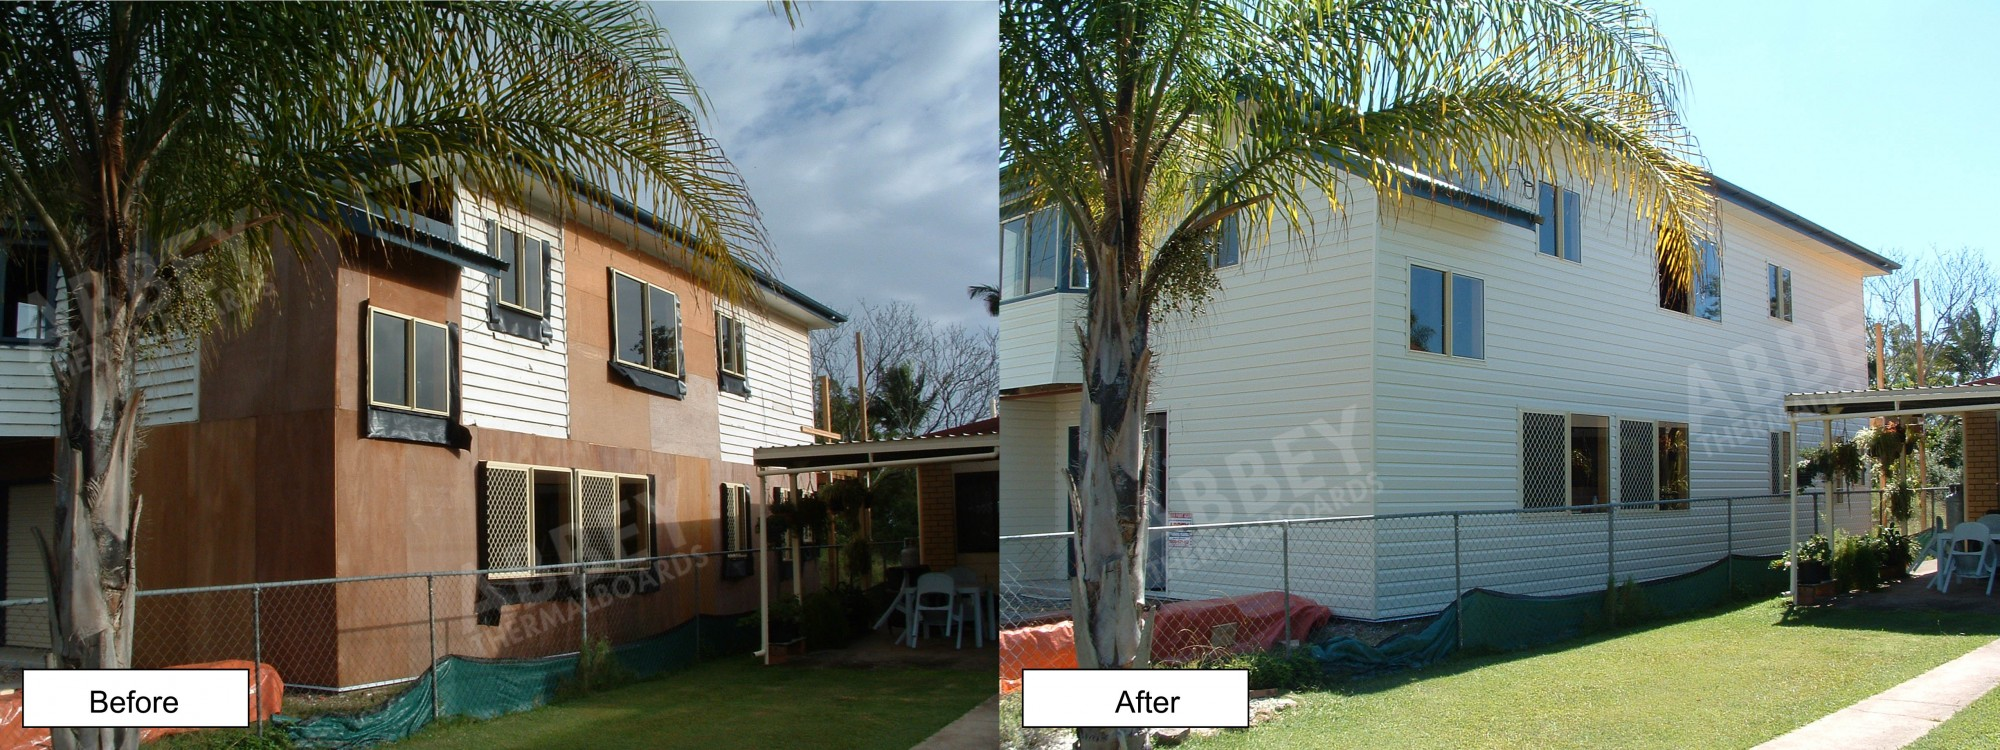 2 storey cladding completed in this before and after picture of a large house.